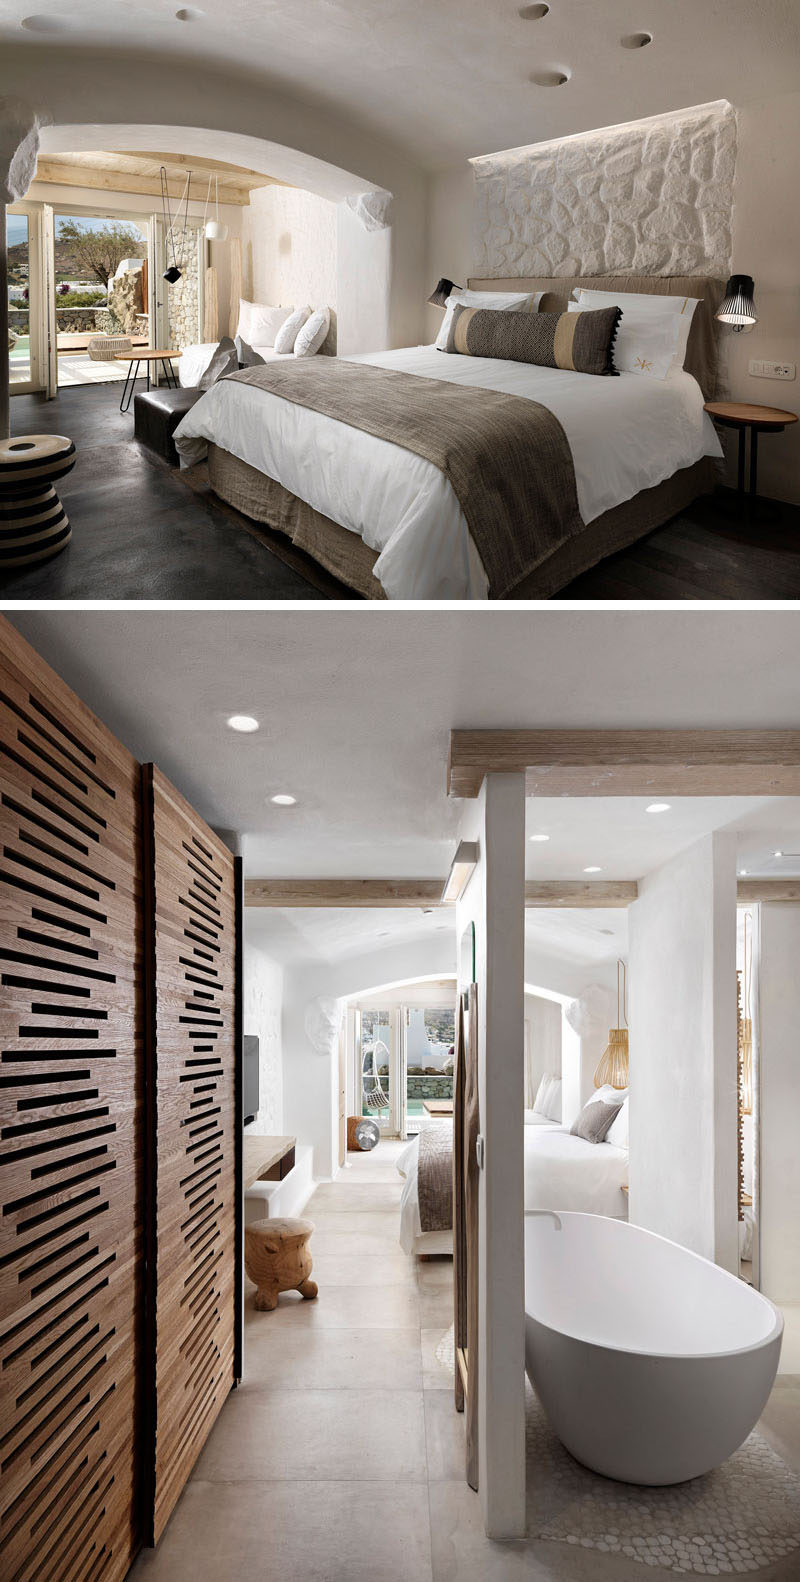 Hotel Bedroom: Kensho, A New Boutique Design Hotel Has Opened Its Doors